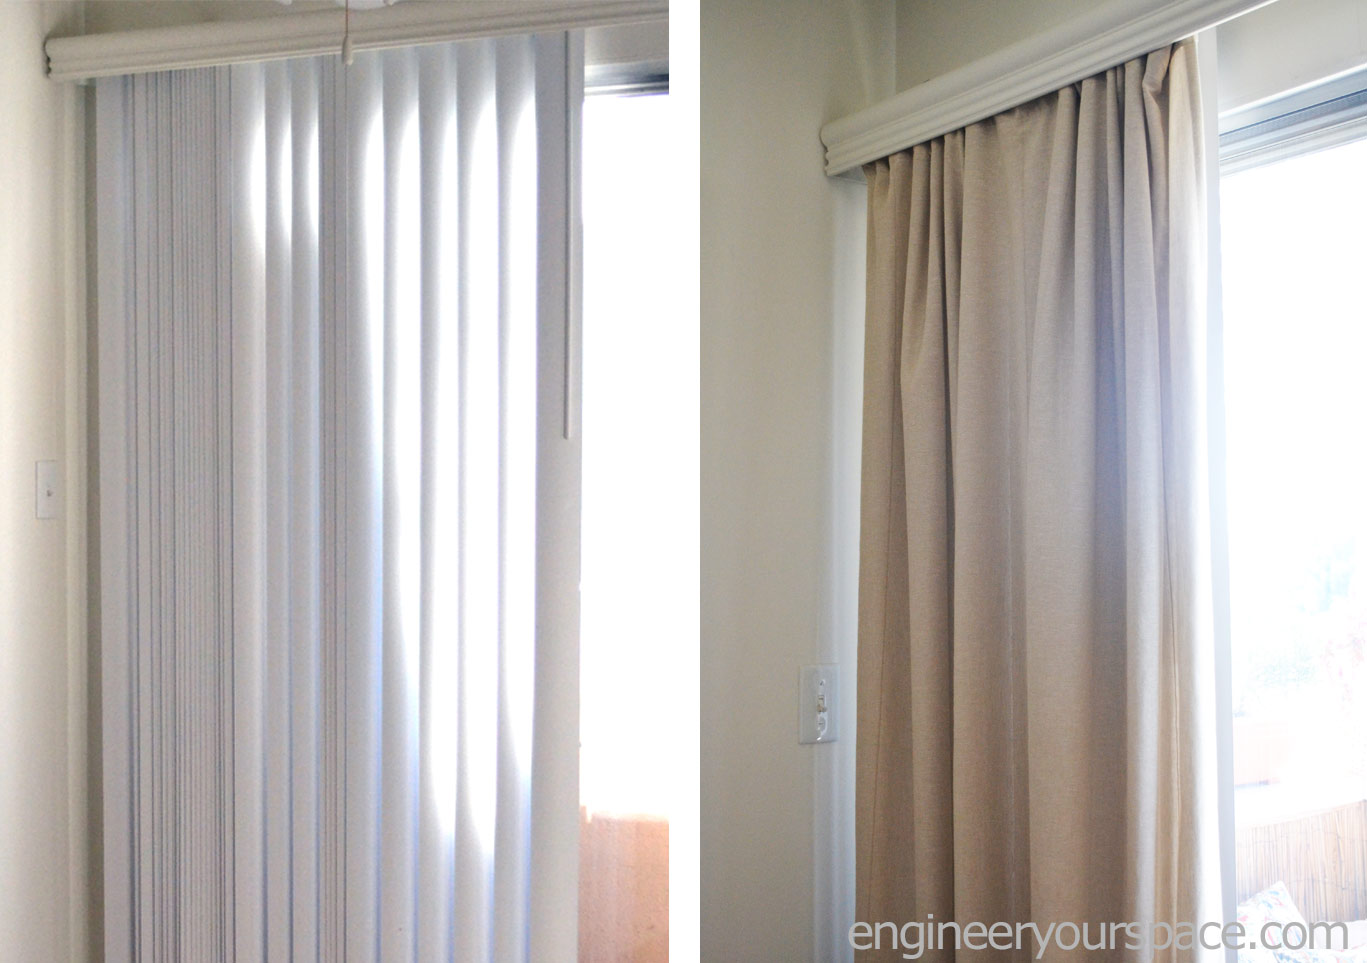 How to conceal vertical blinds with curtains smart diy Curtains venetian blinds